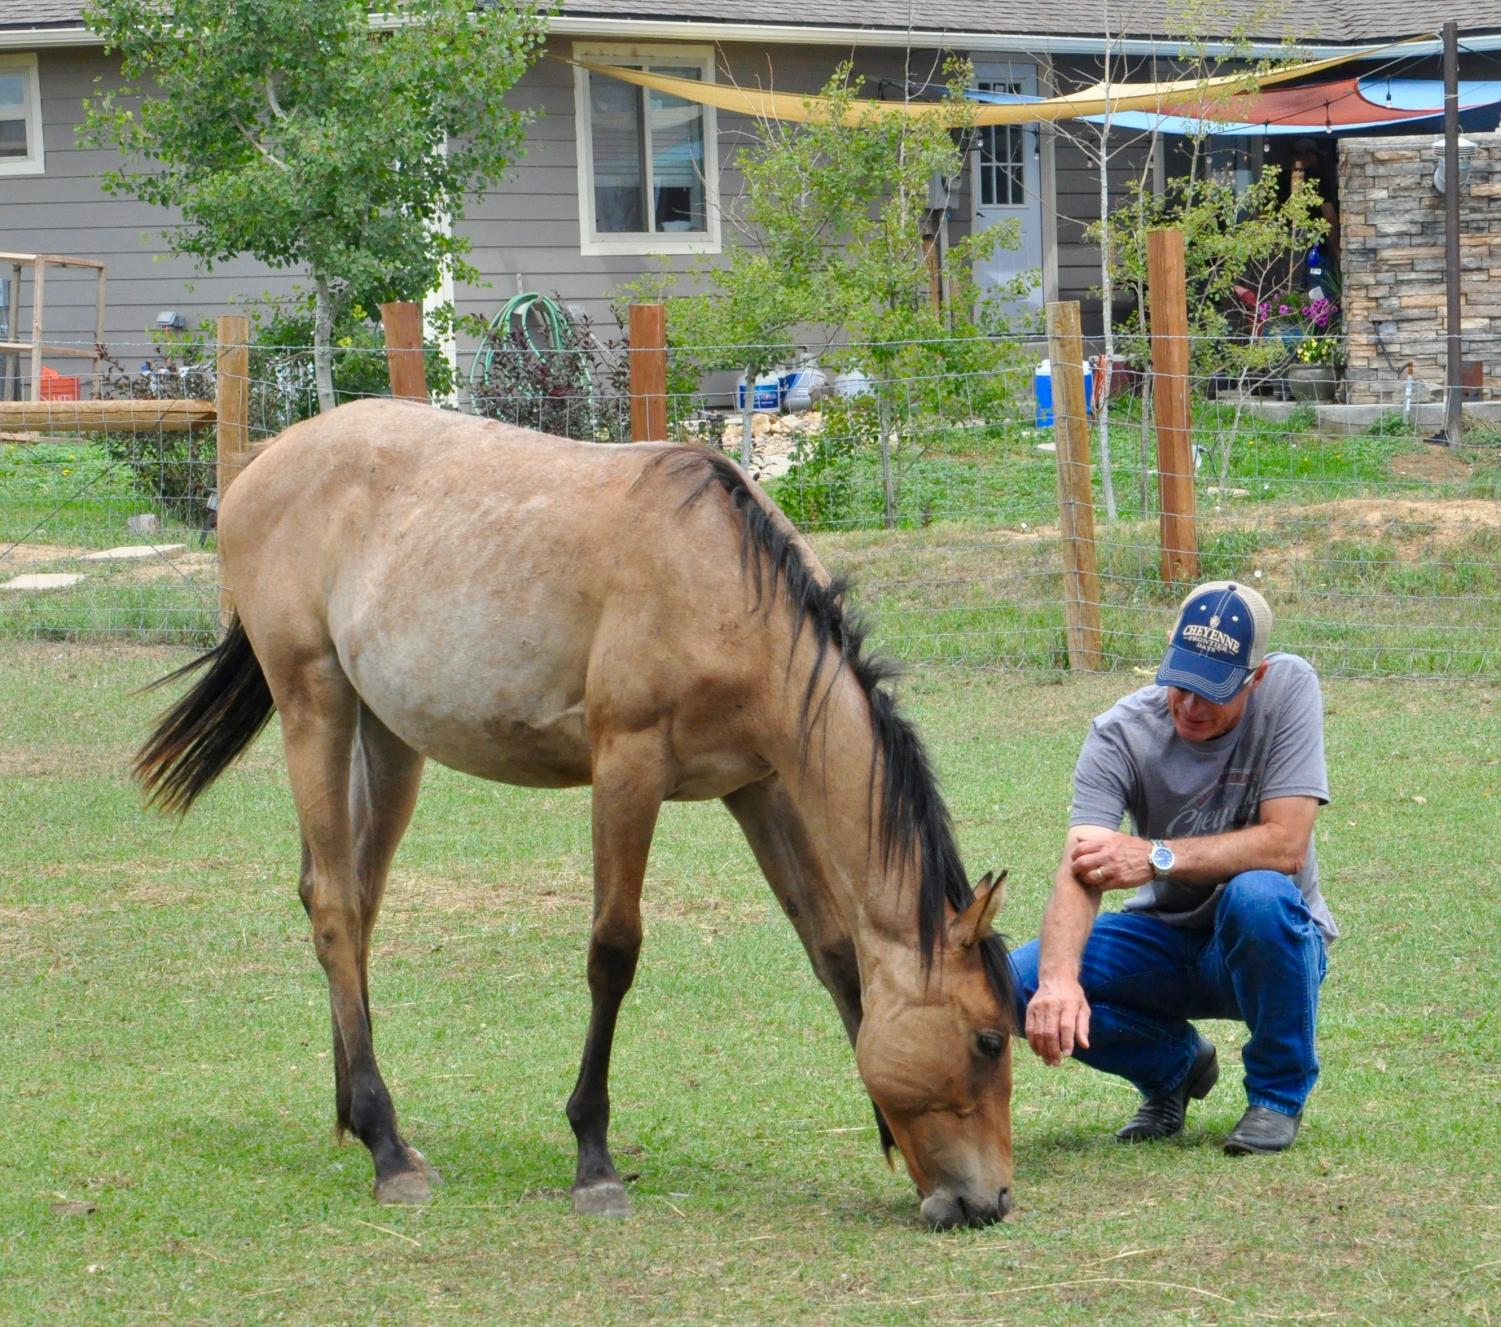 Local+non-profit+provides+opportunities+for+Veterans+through+equine+therapy